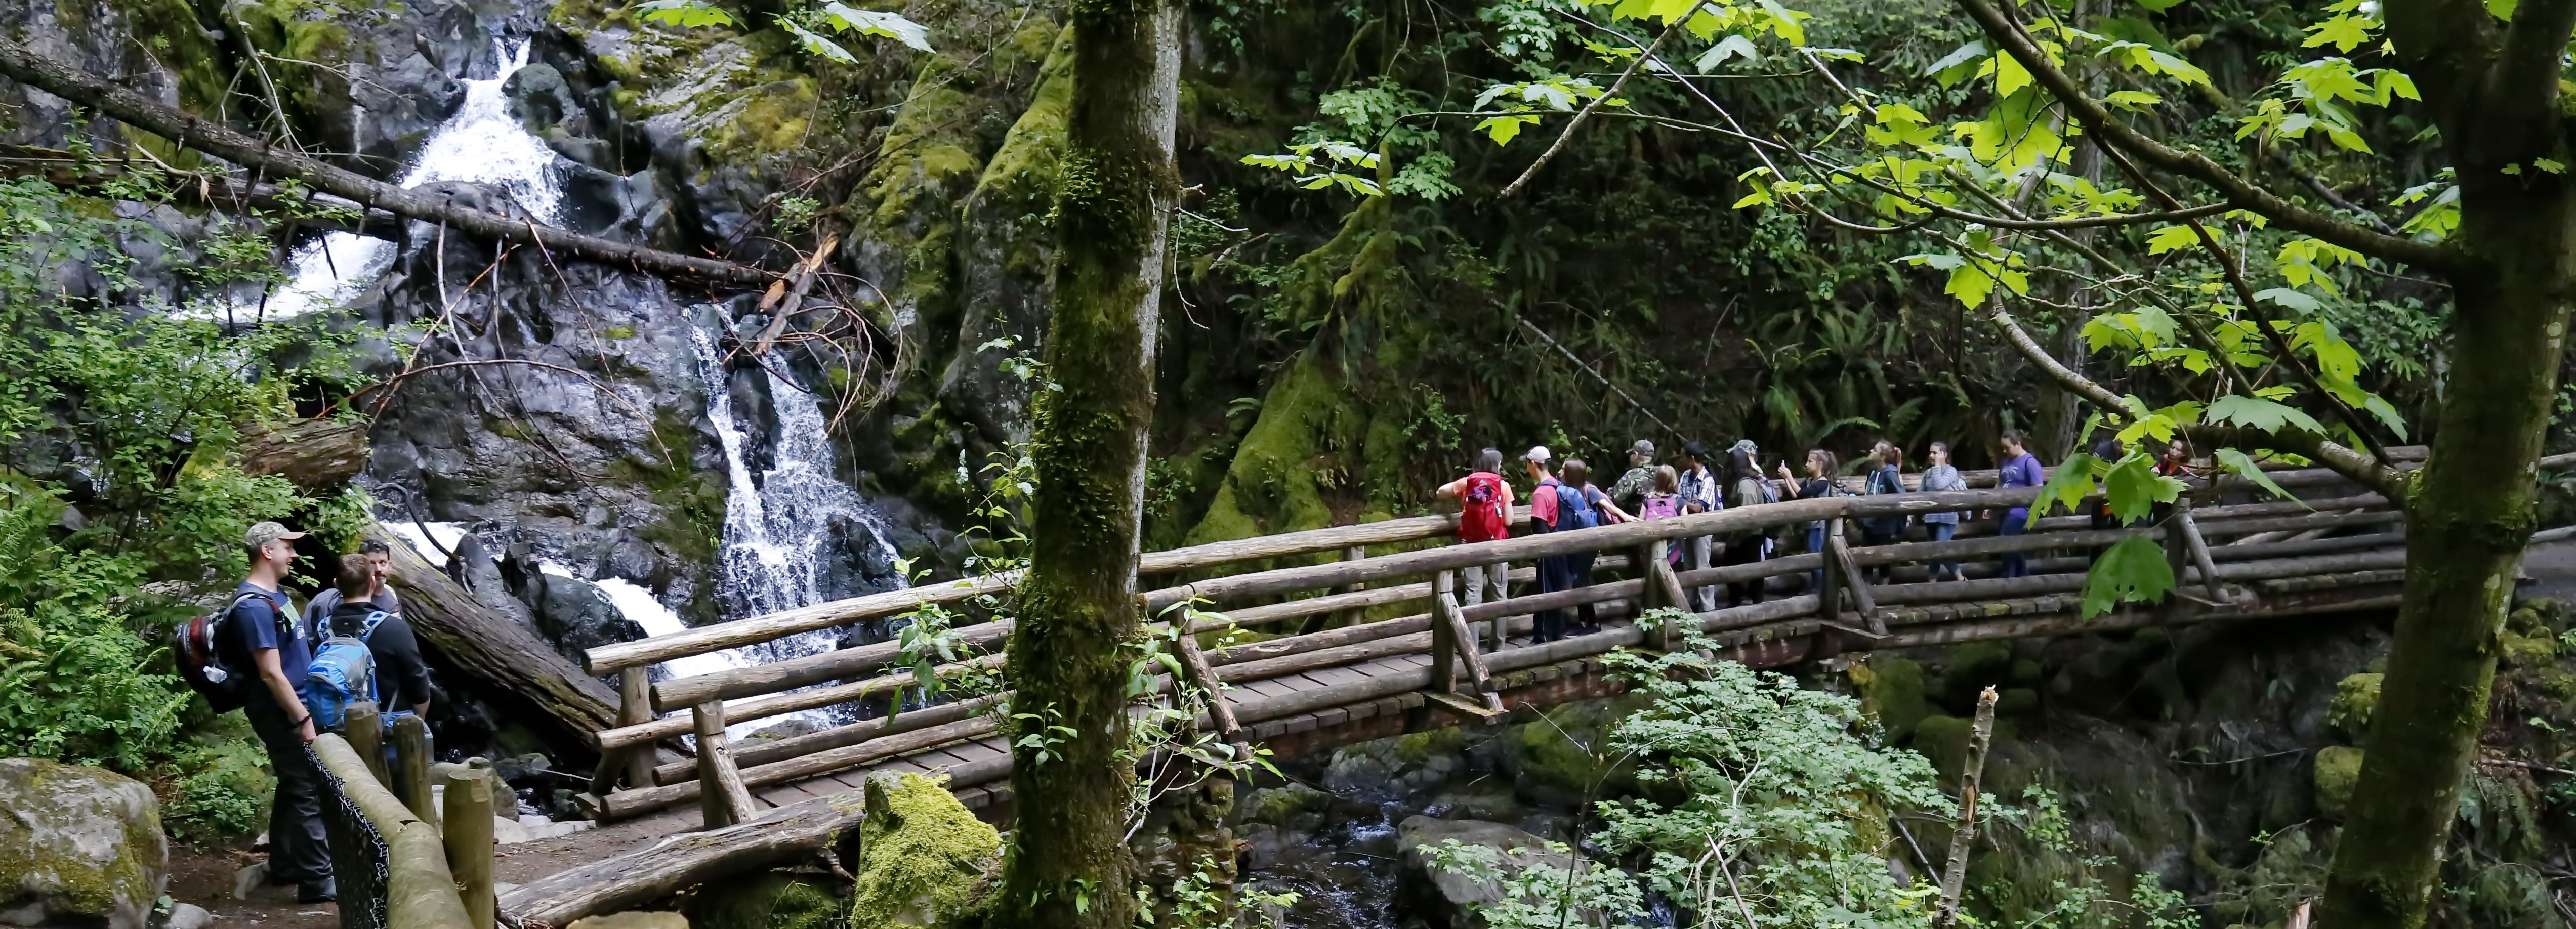 Explore the Gorge Youth Program